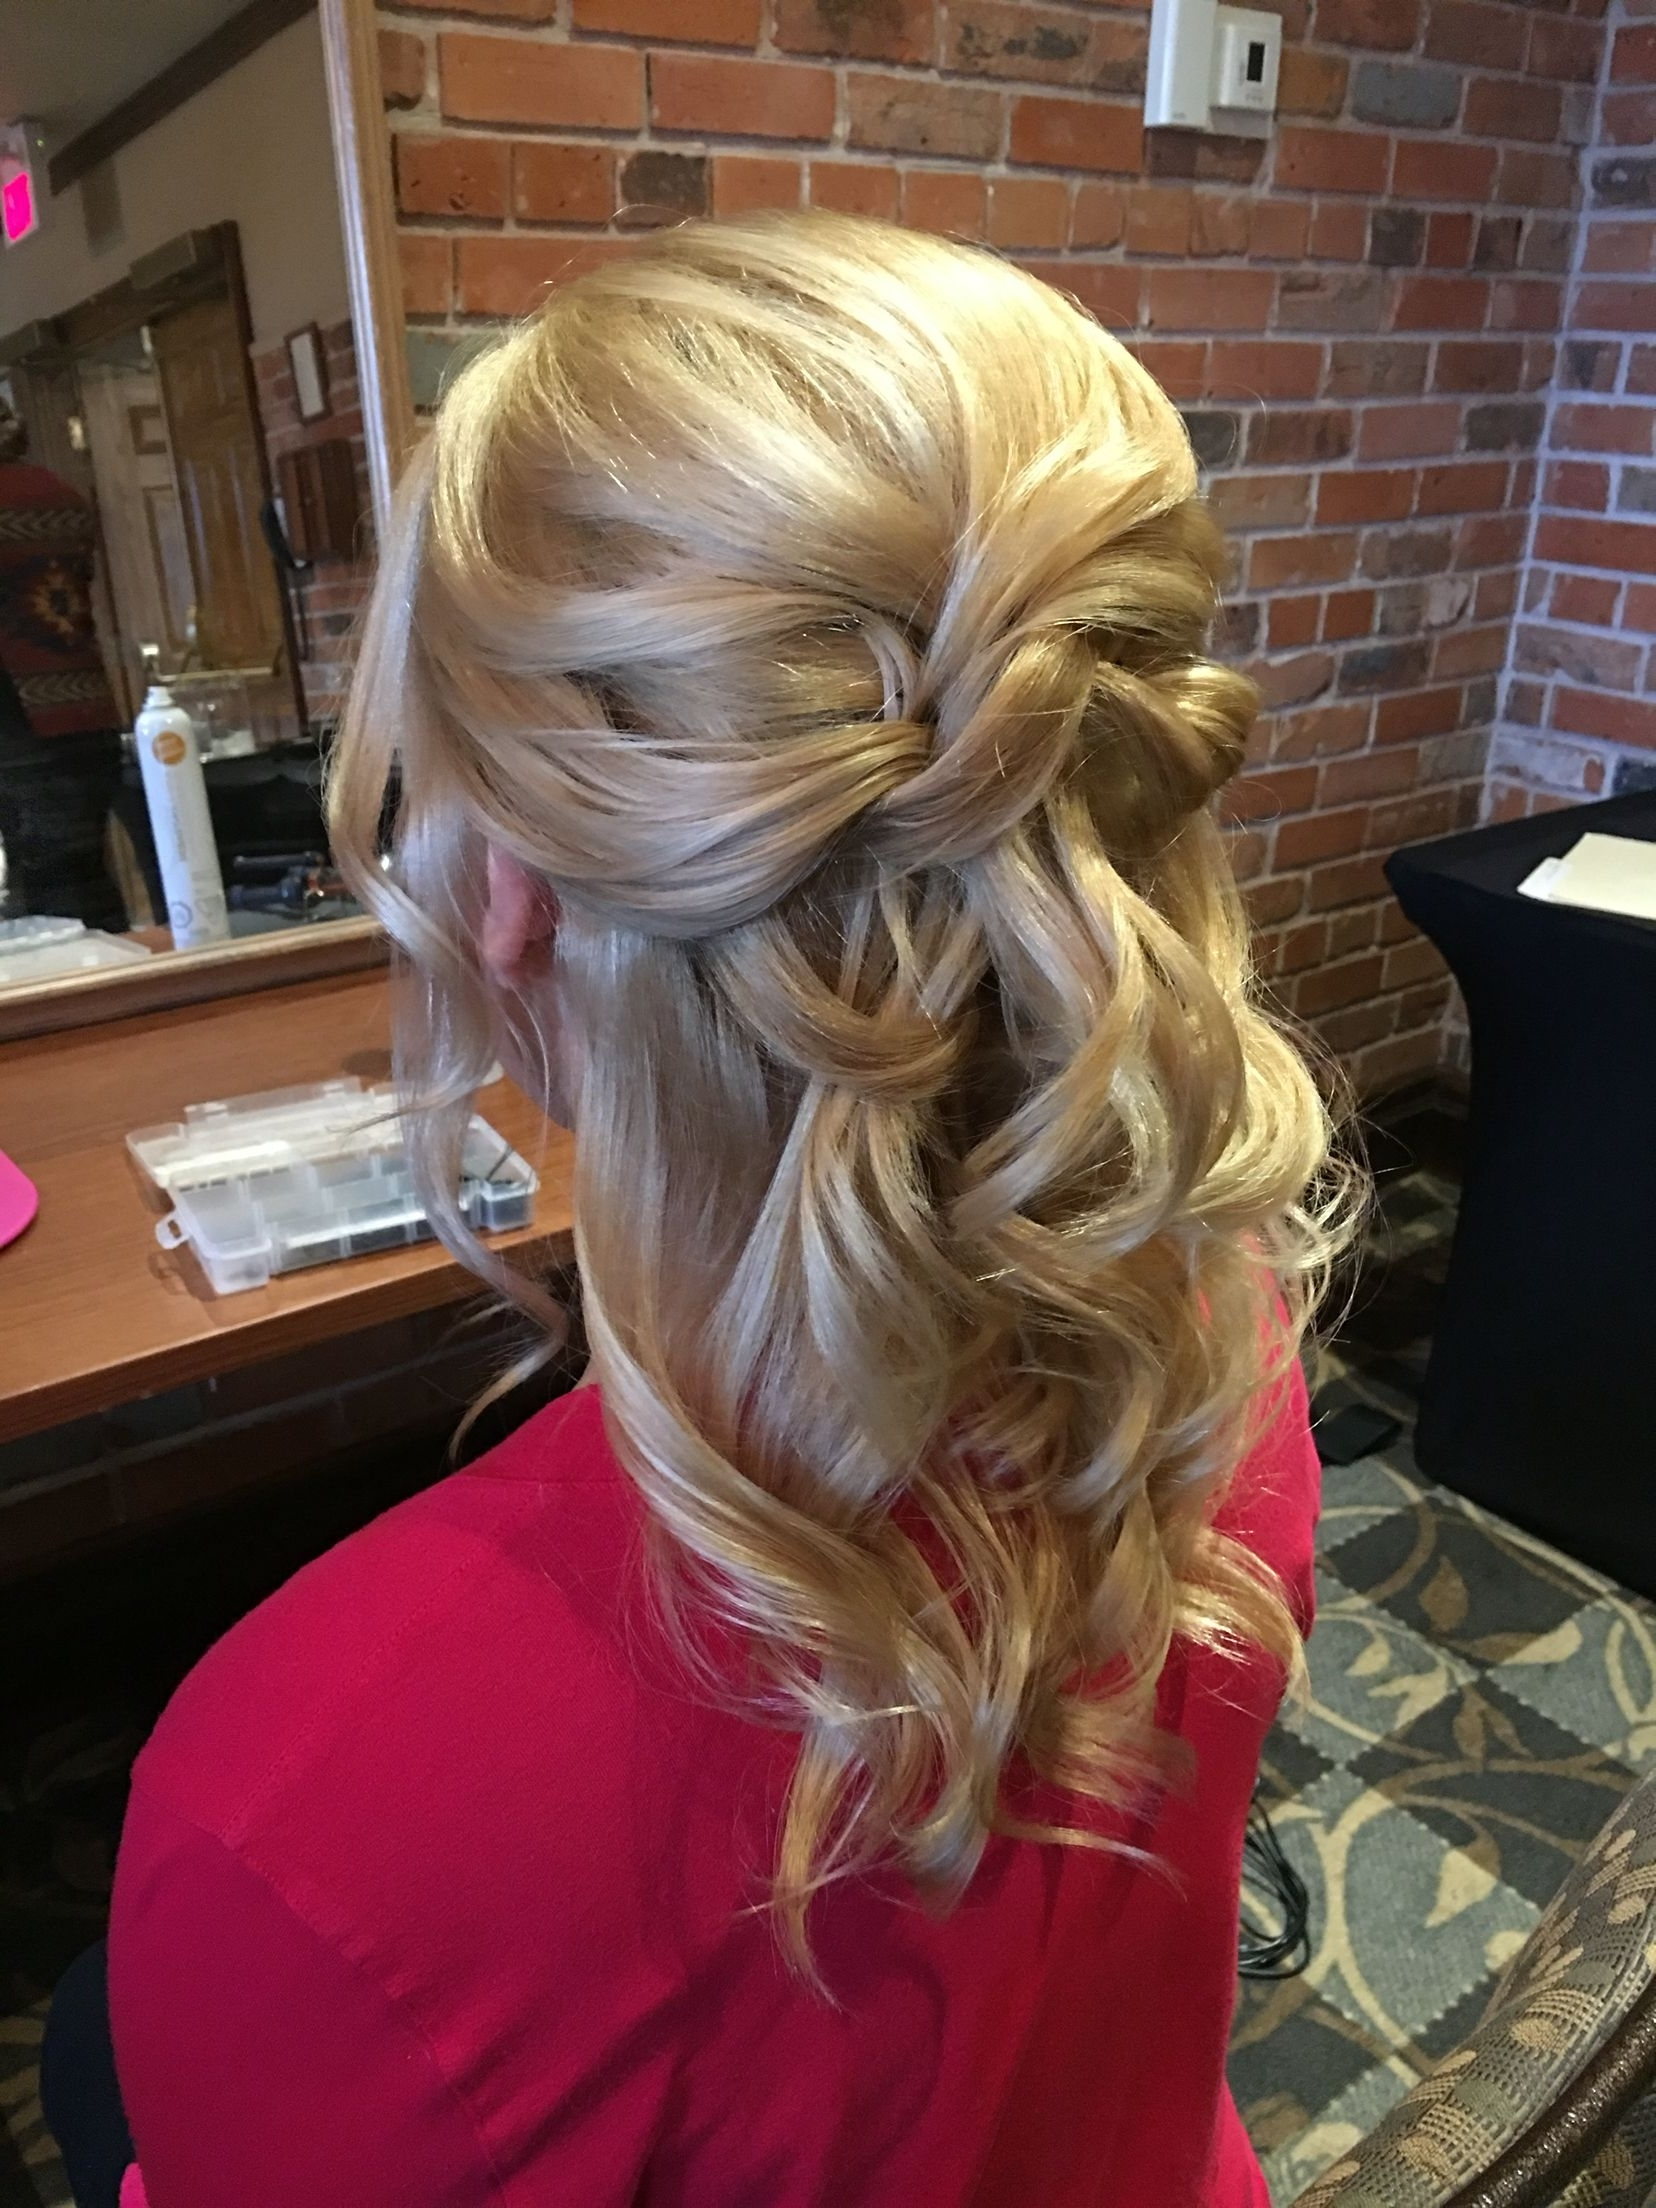 Half Up Half Down Wedding Hair For Bride Or Mother Of The Bride Intended For Updo Hairstyles For Mother Of The Bride (View 15 of 15)